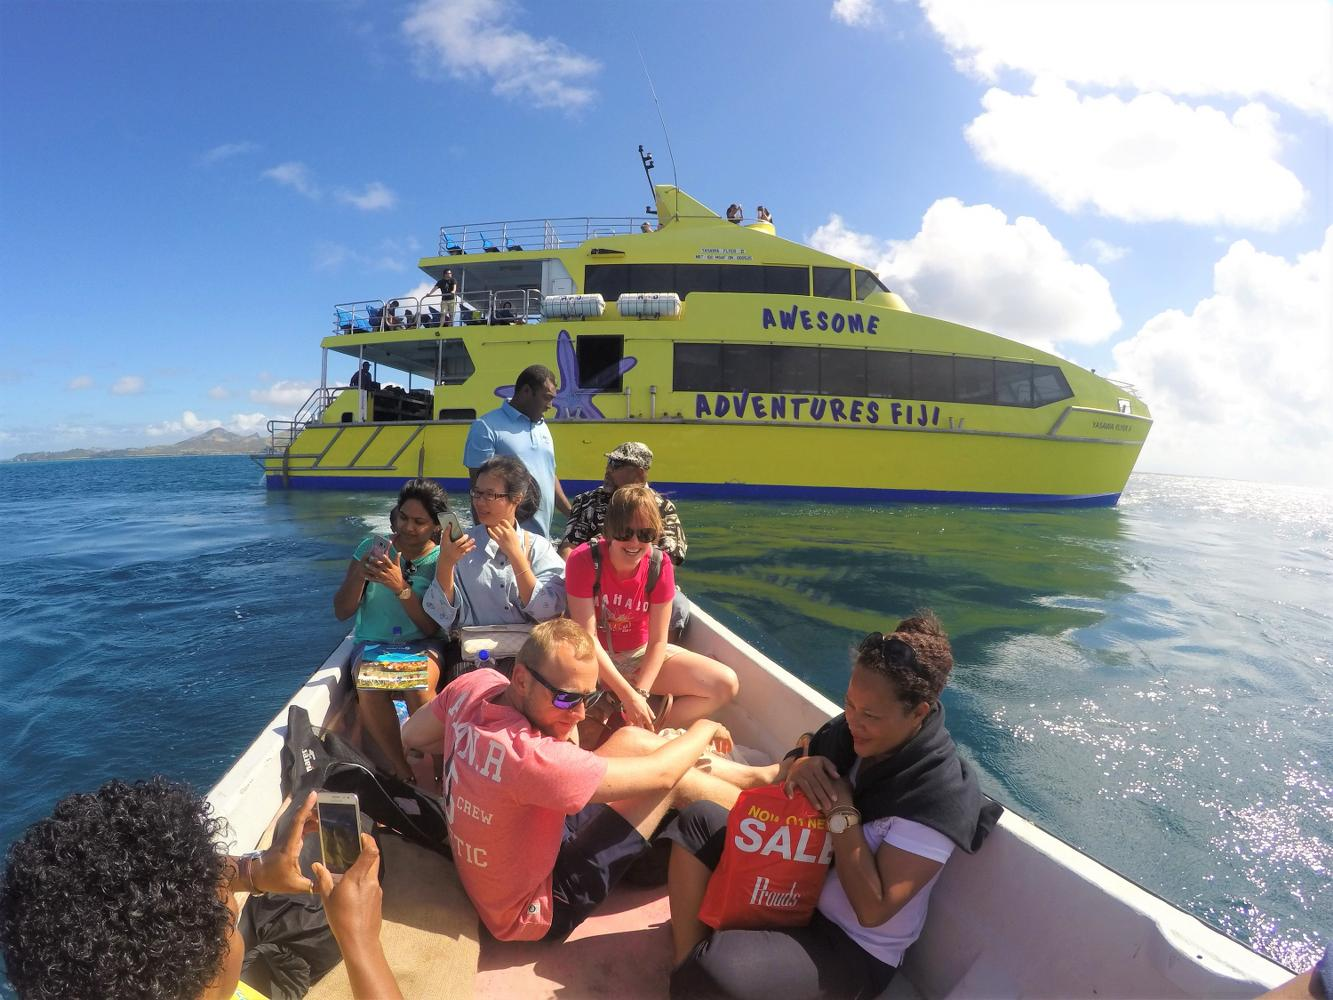 Yasawa Flyer on it's way to Barefoot Kuata for the snorkel with the sharks tour in Fiji